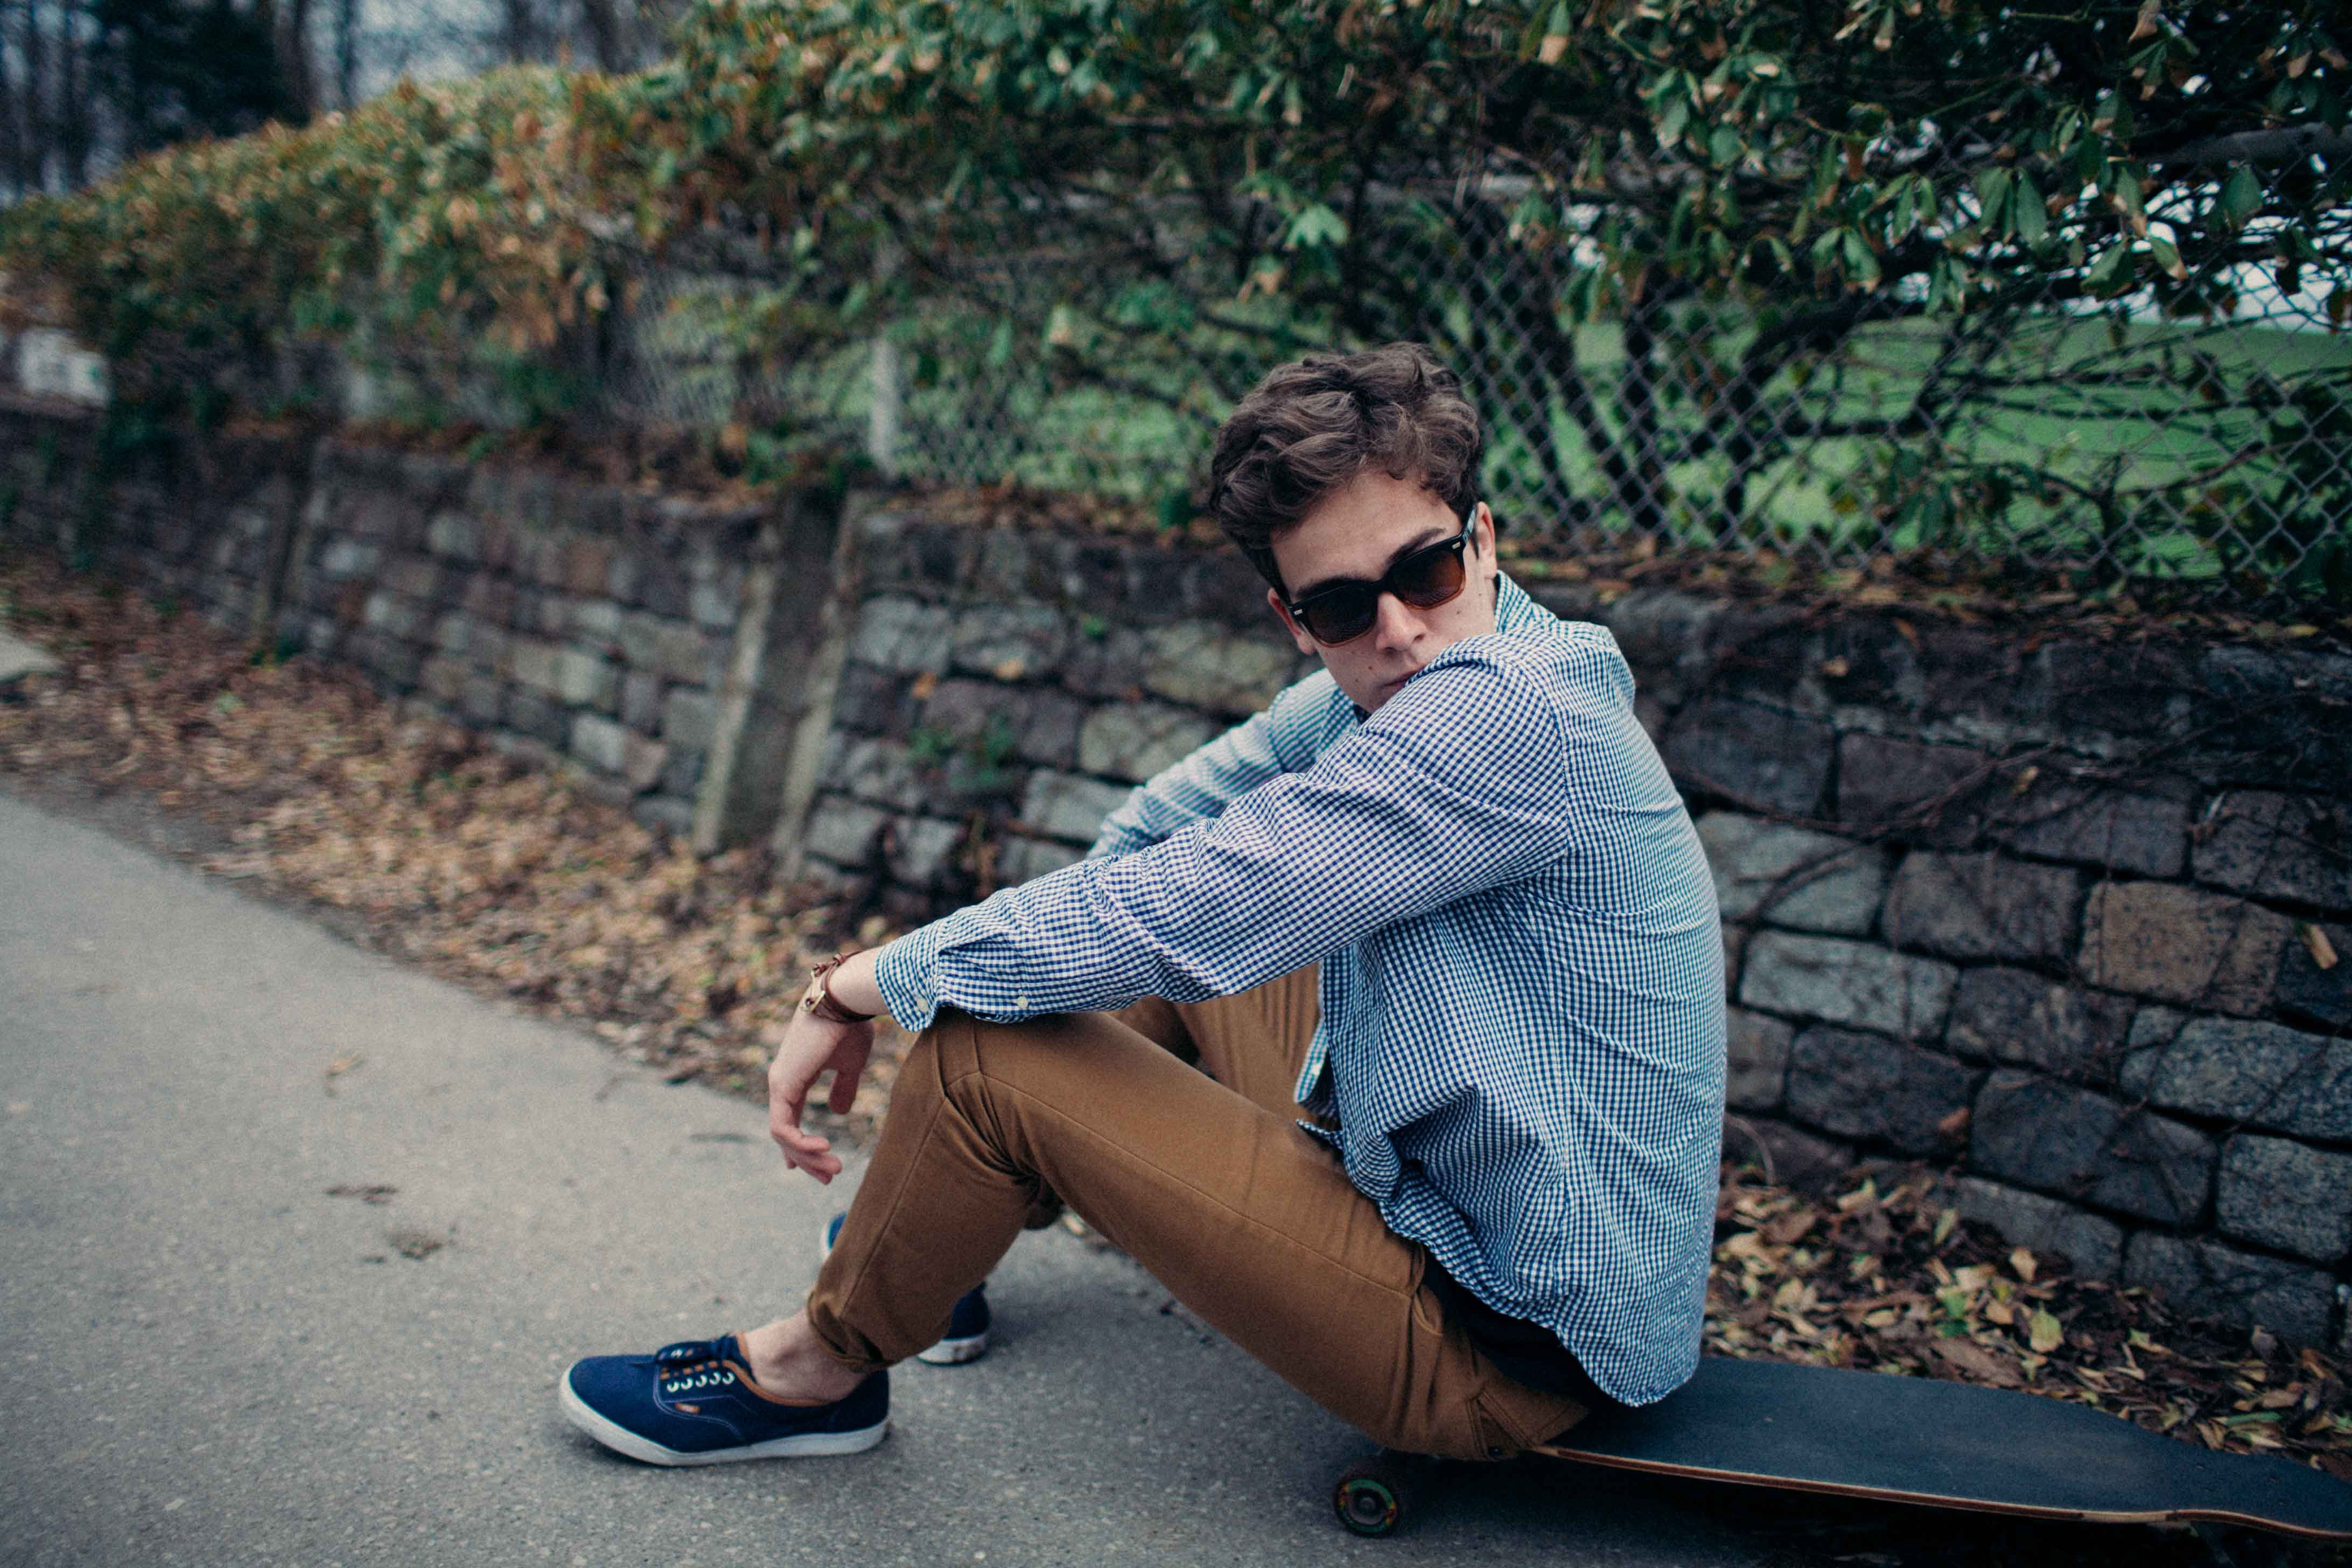 man sitting on skateboard during daytime